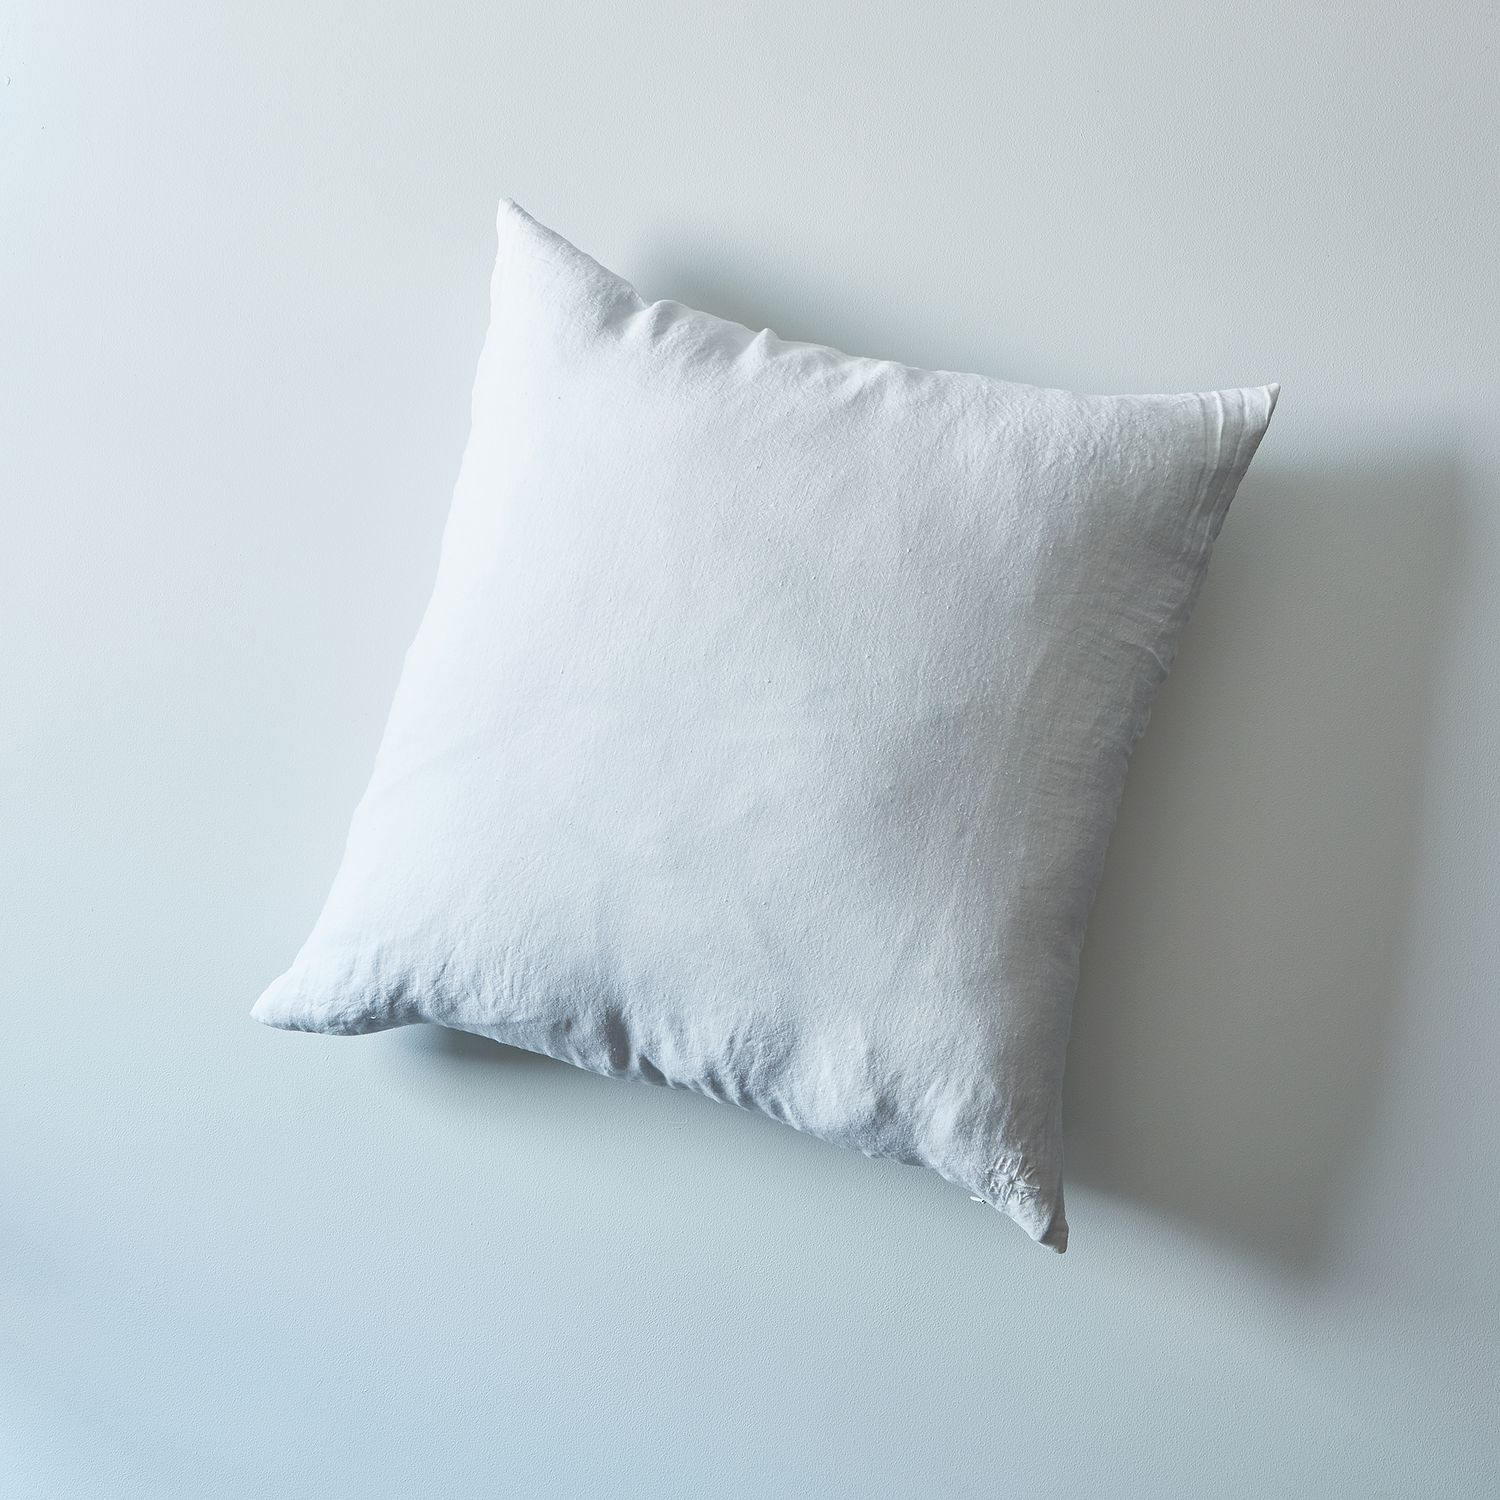 Stonewashed Linen Pillow Covers Pillows Home Decor